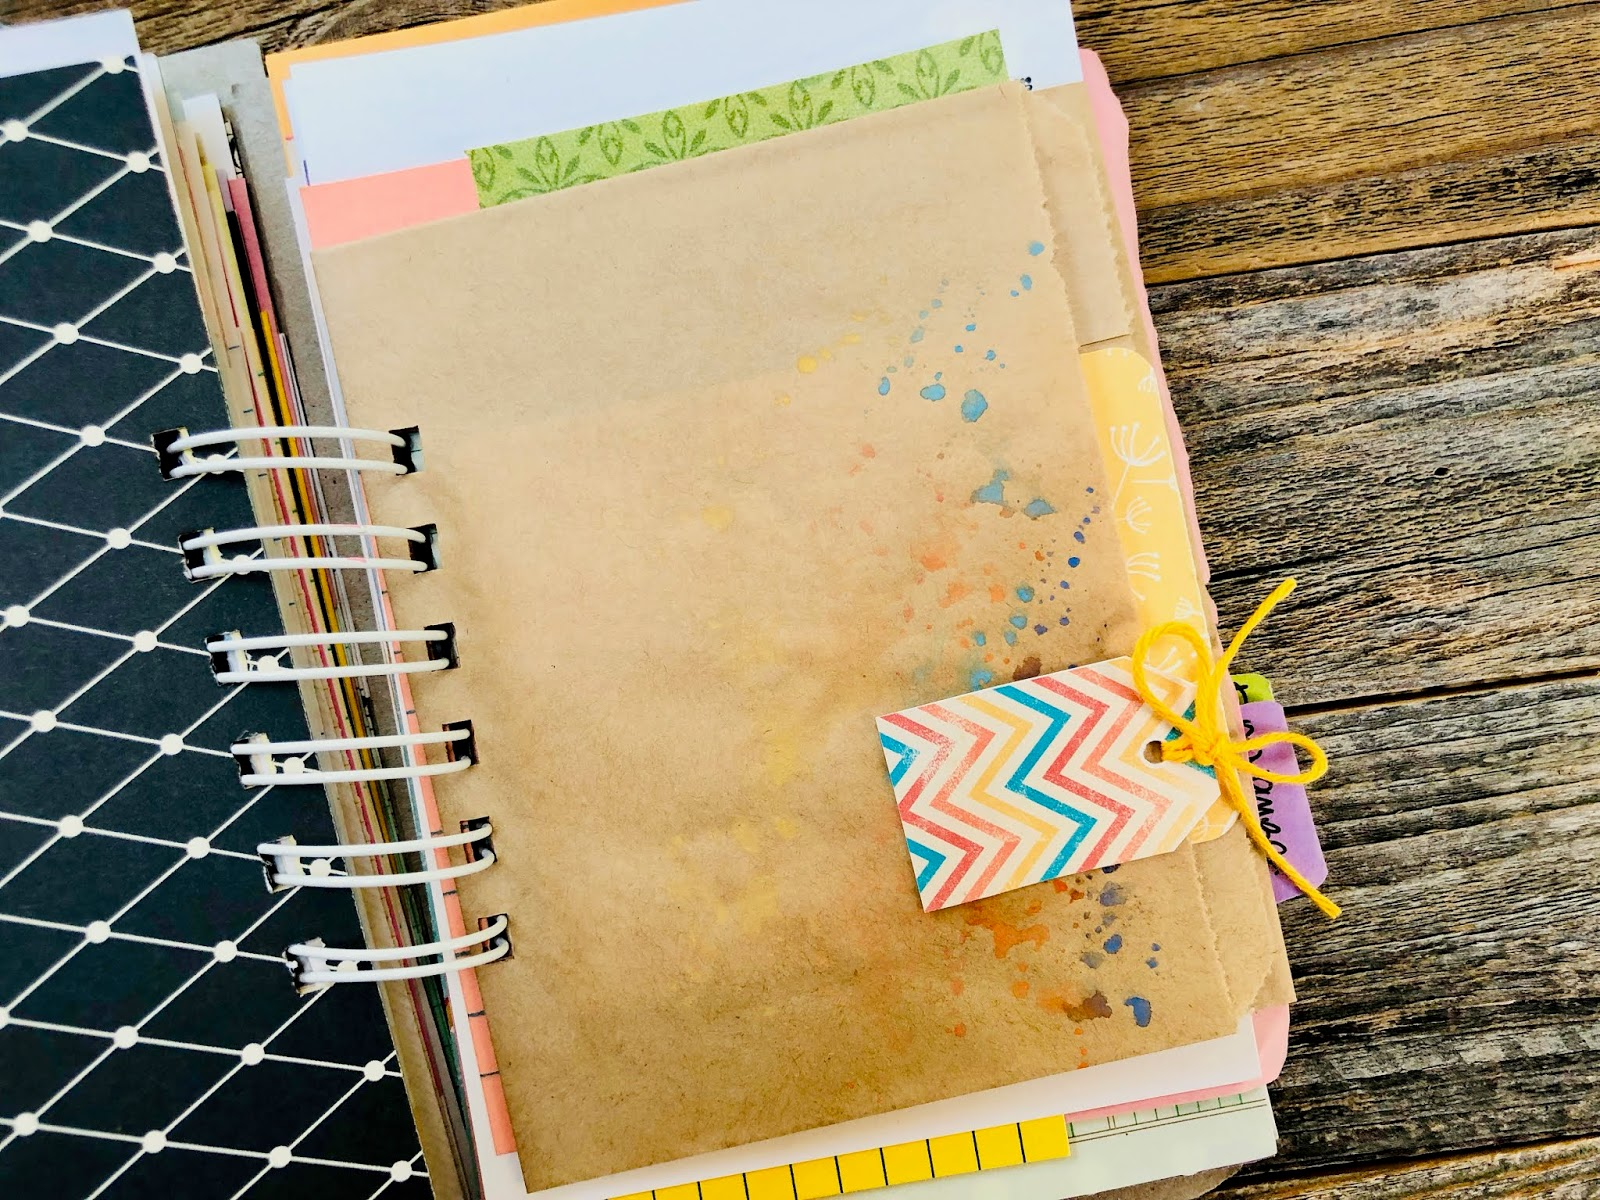 #gratitude journal #gratitude #journaling #journaling cards #positivity #journal #notebook #thankful #grateful